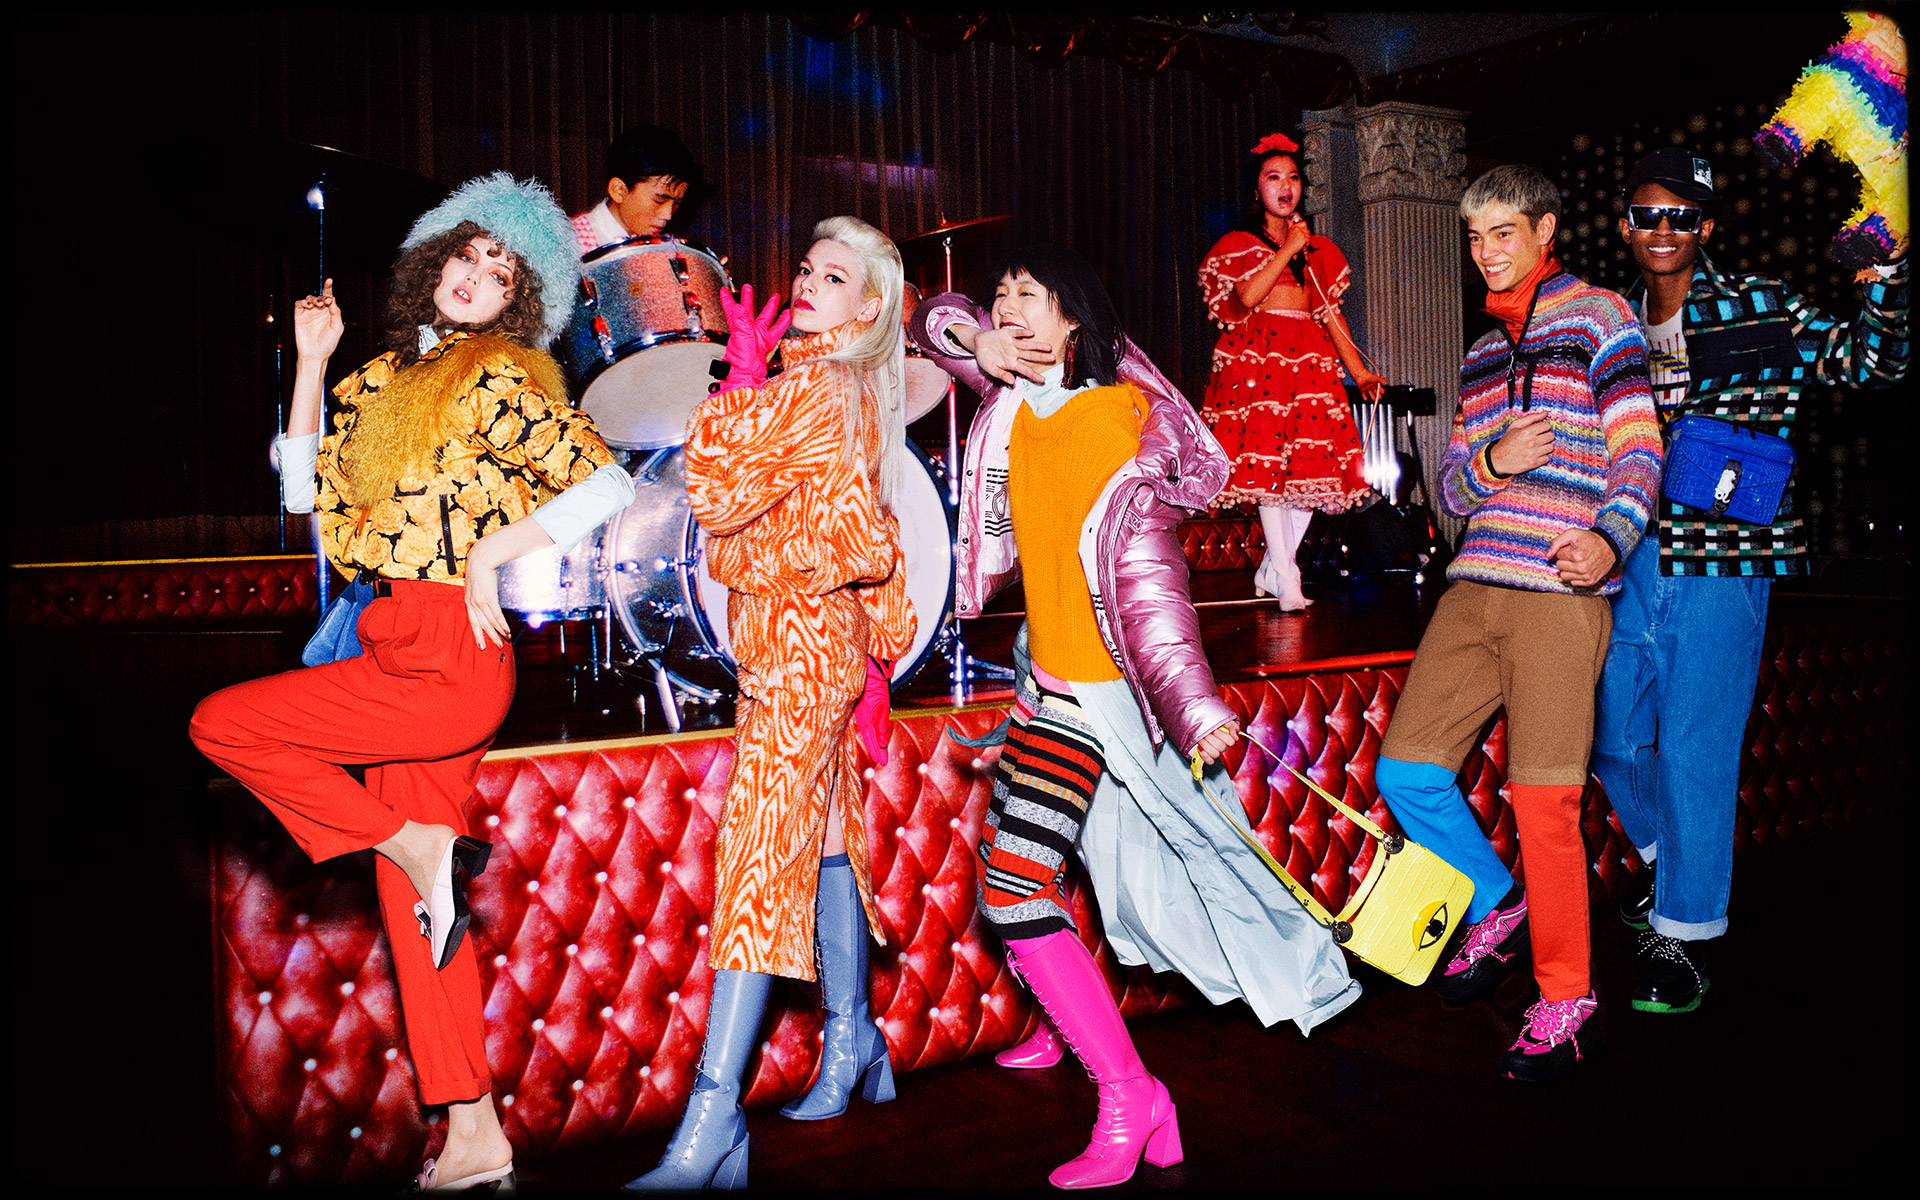 Kenzo Fall 2019 Ad Campaign by David LaChapelle